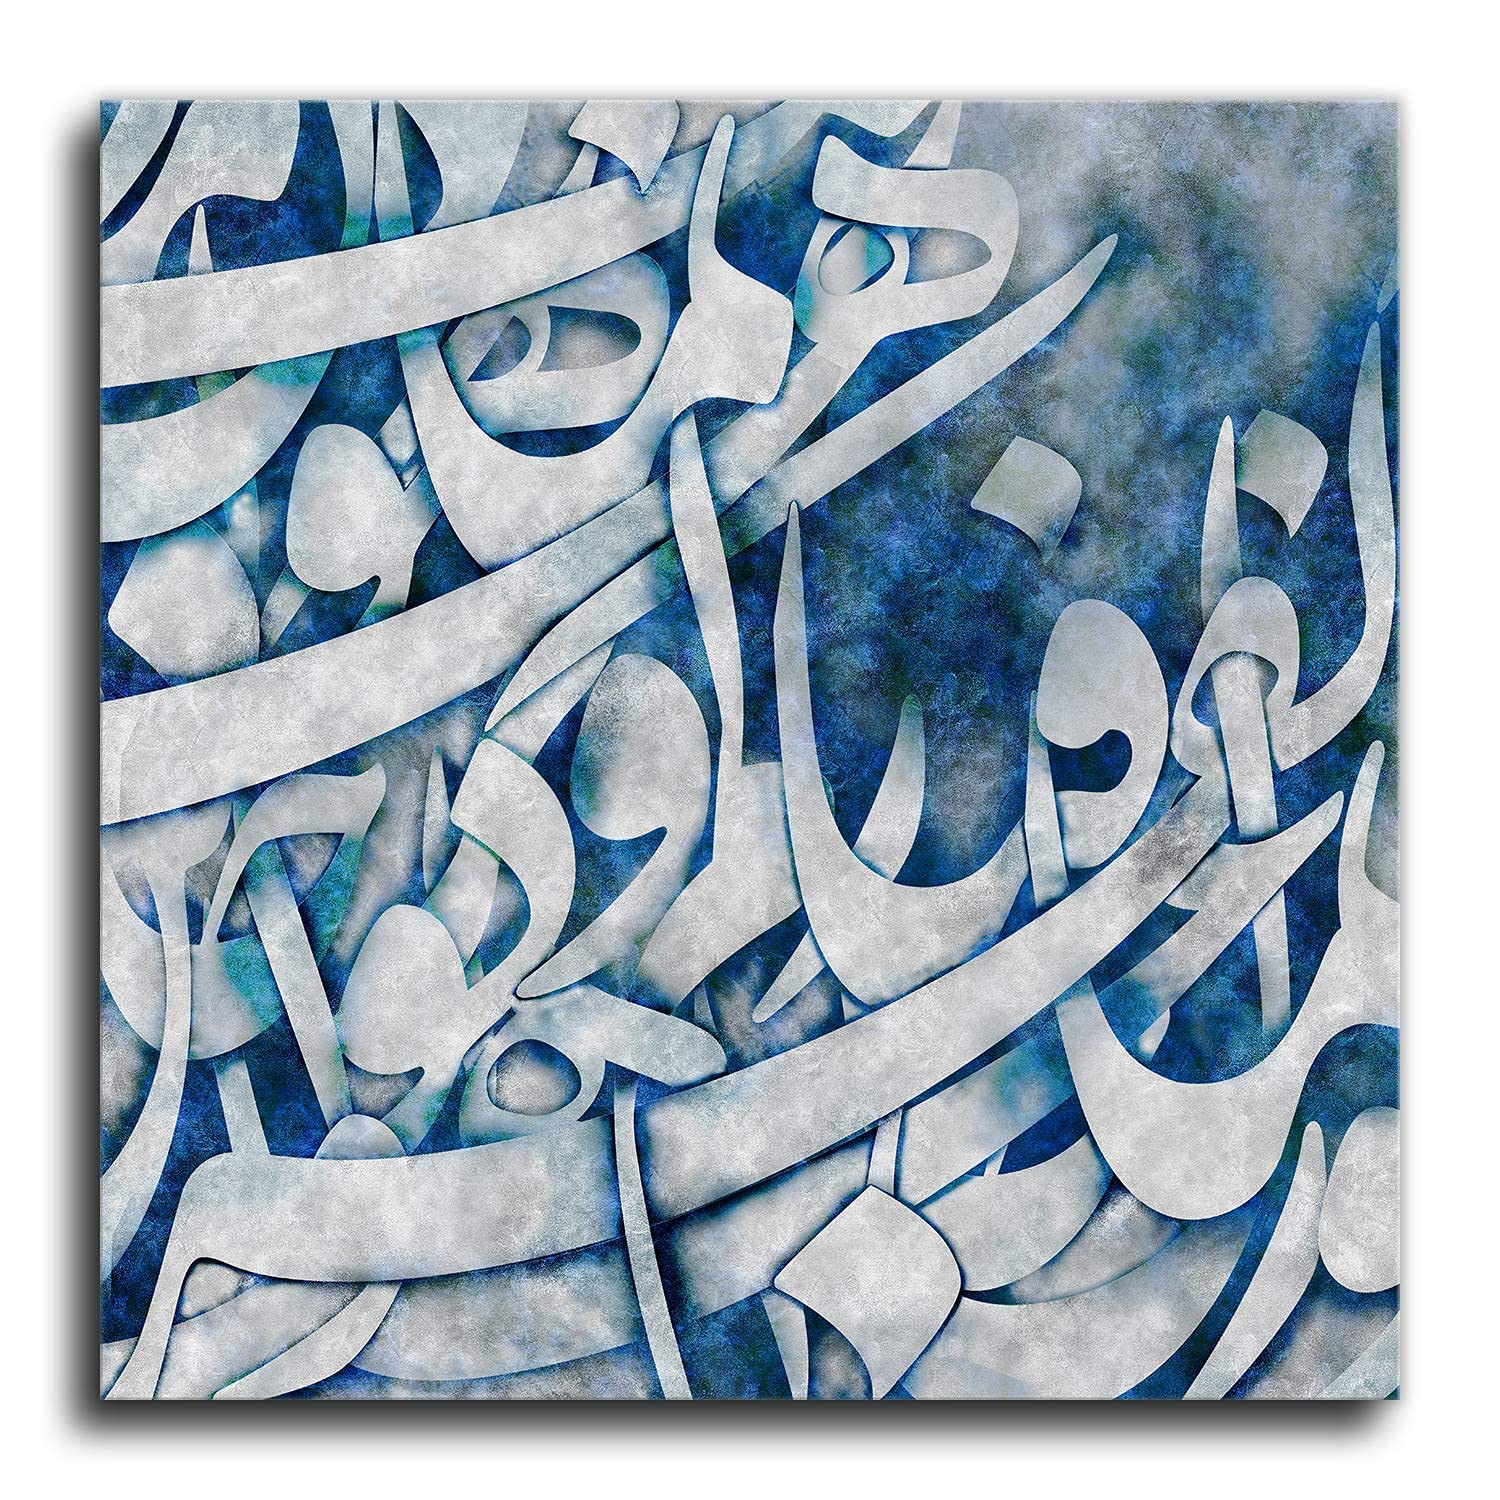 Rumi quite Excellence with Persian calligraphy wall prints canvas for art P Cash special price